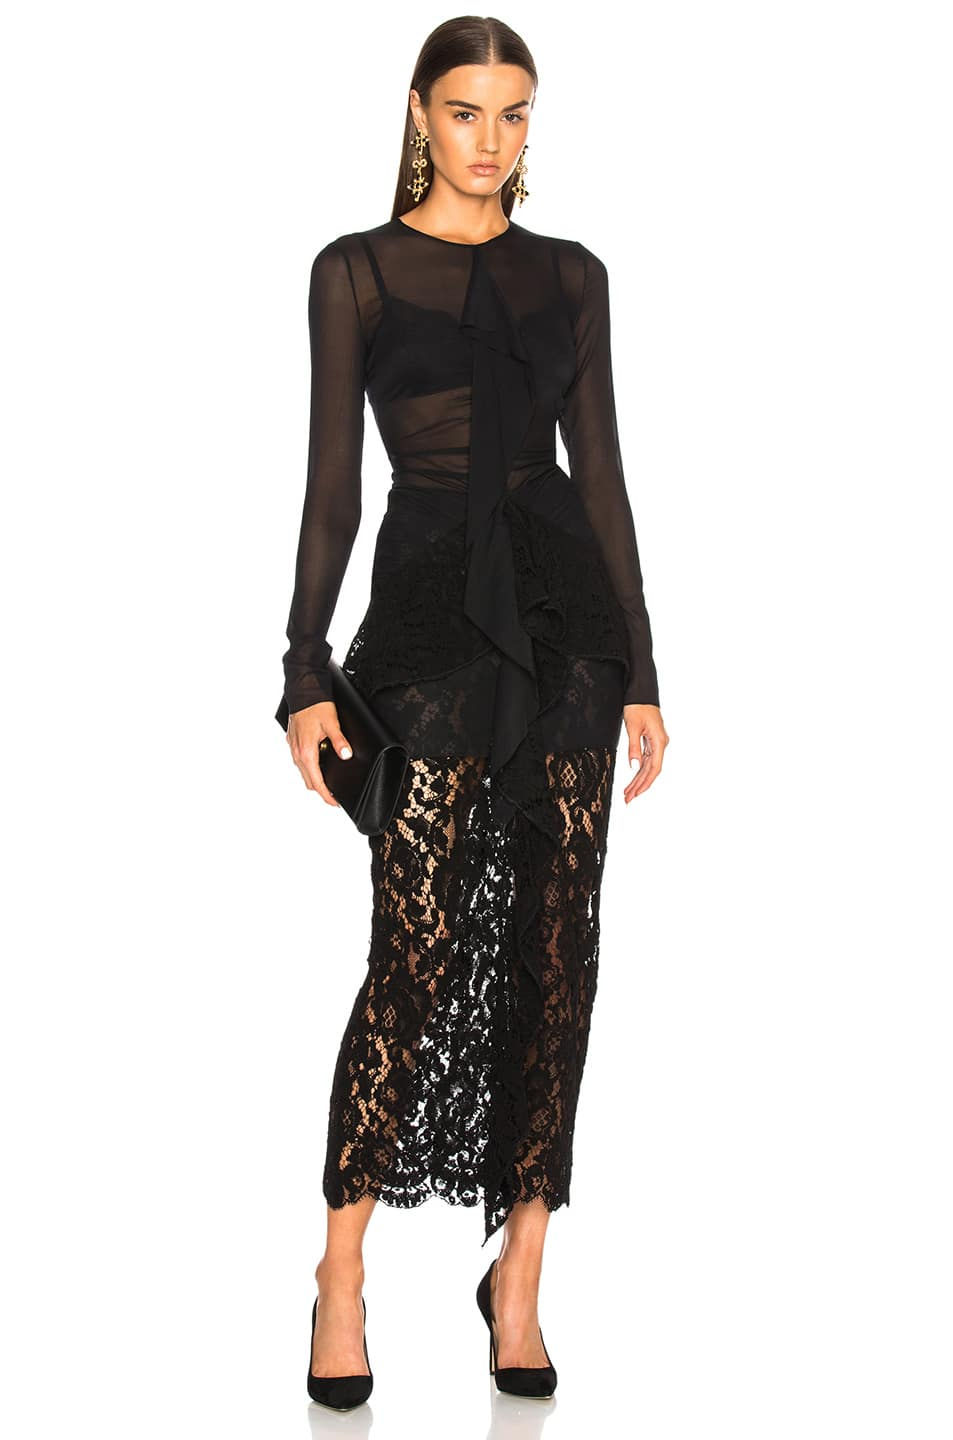 4fa4f4f51 PROENZA SCHOULER Corded Lace Long Sleeve Maxi Black Dress - We ...